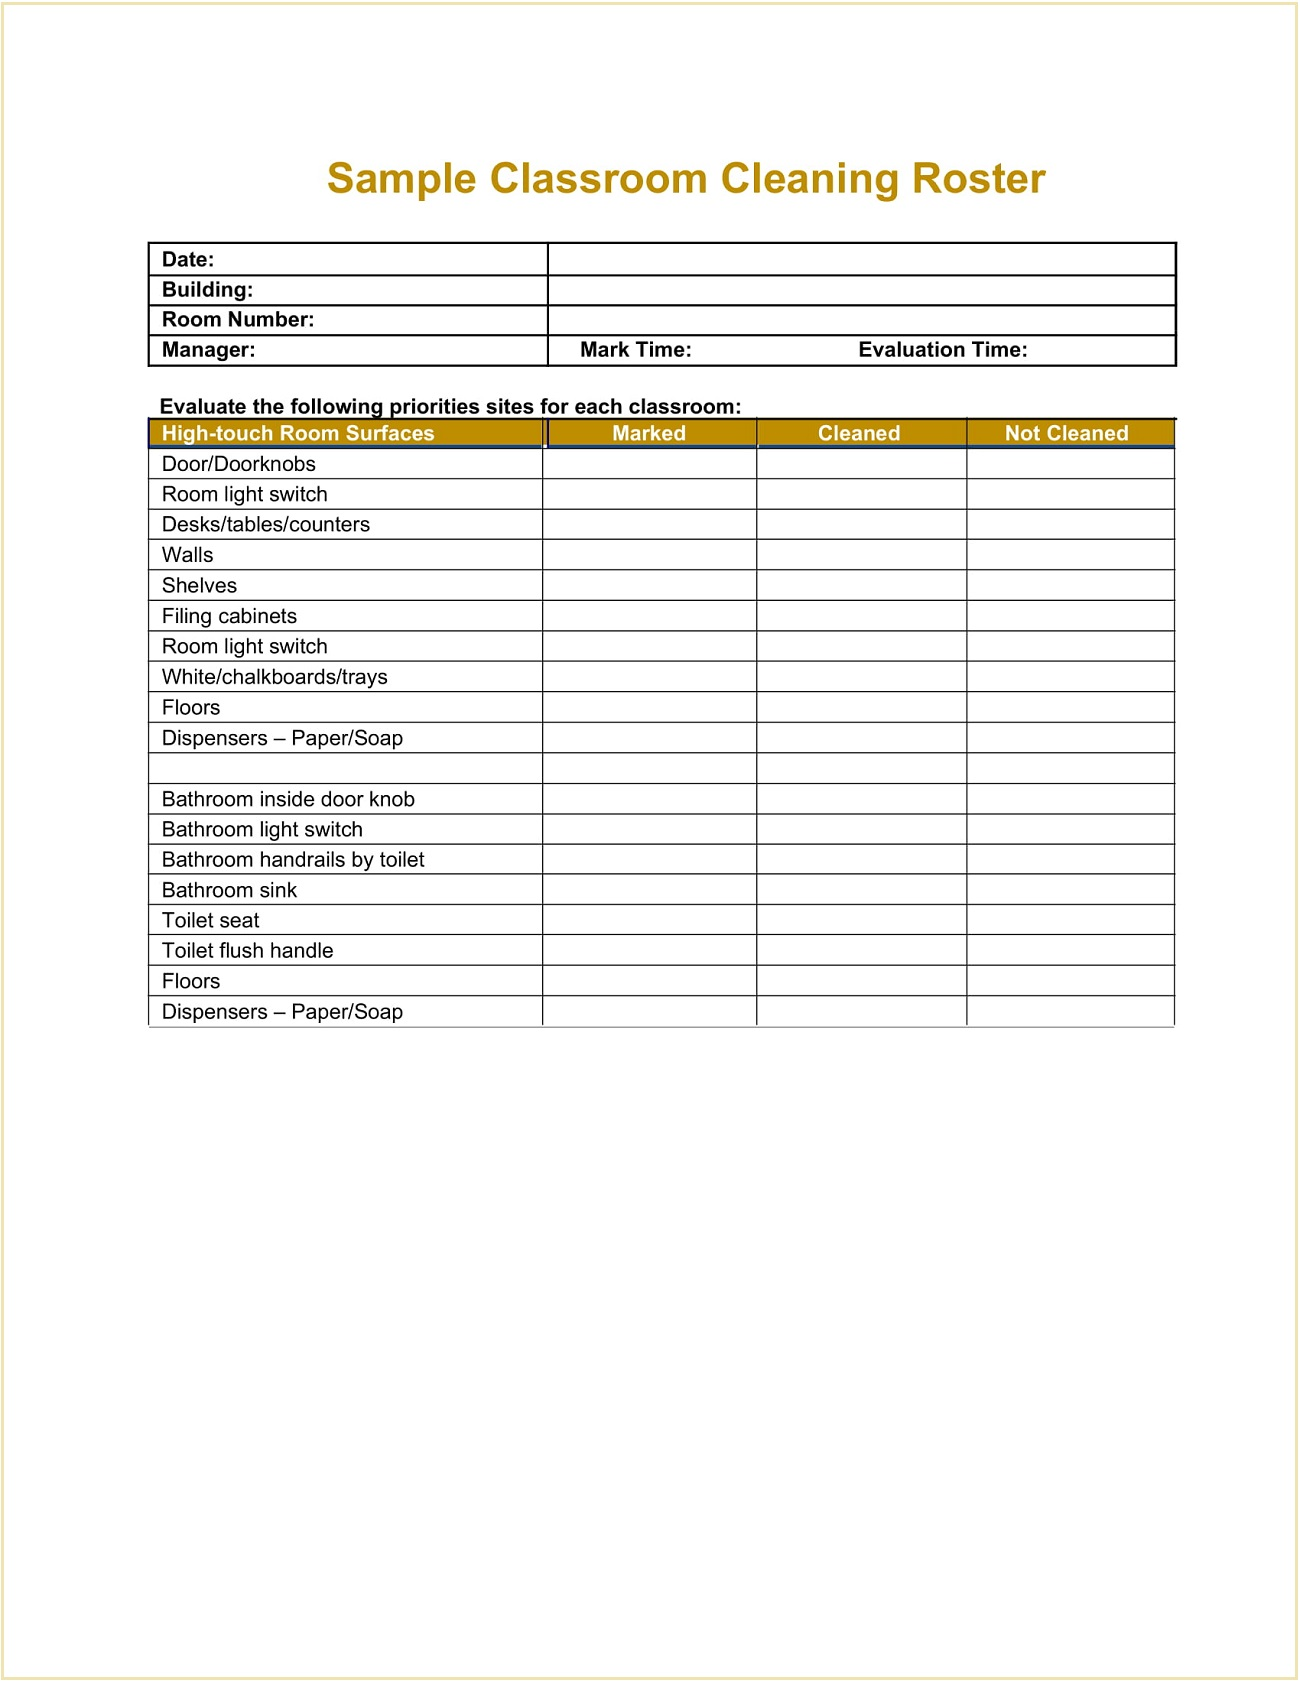 Sample Classroom Cleaning Roster Template Word